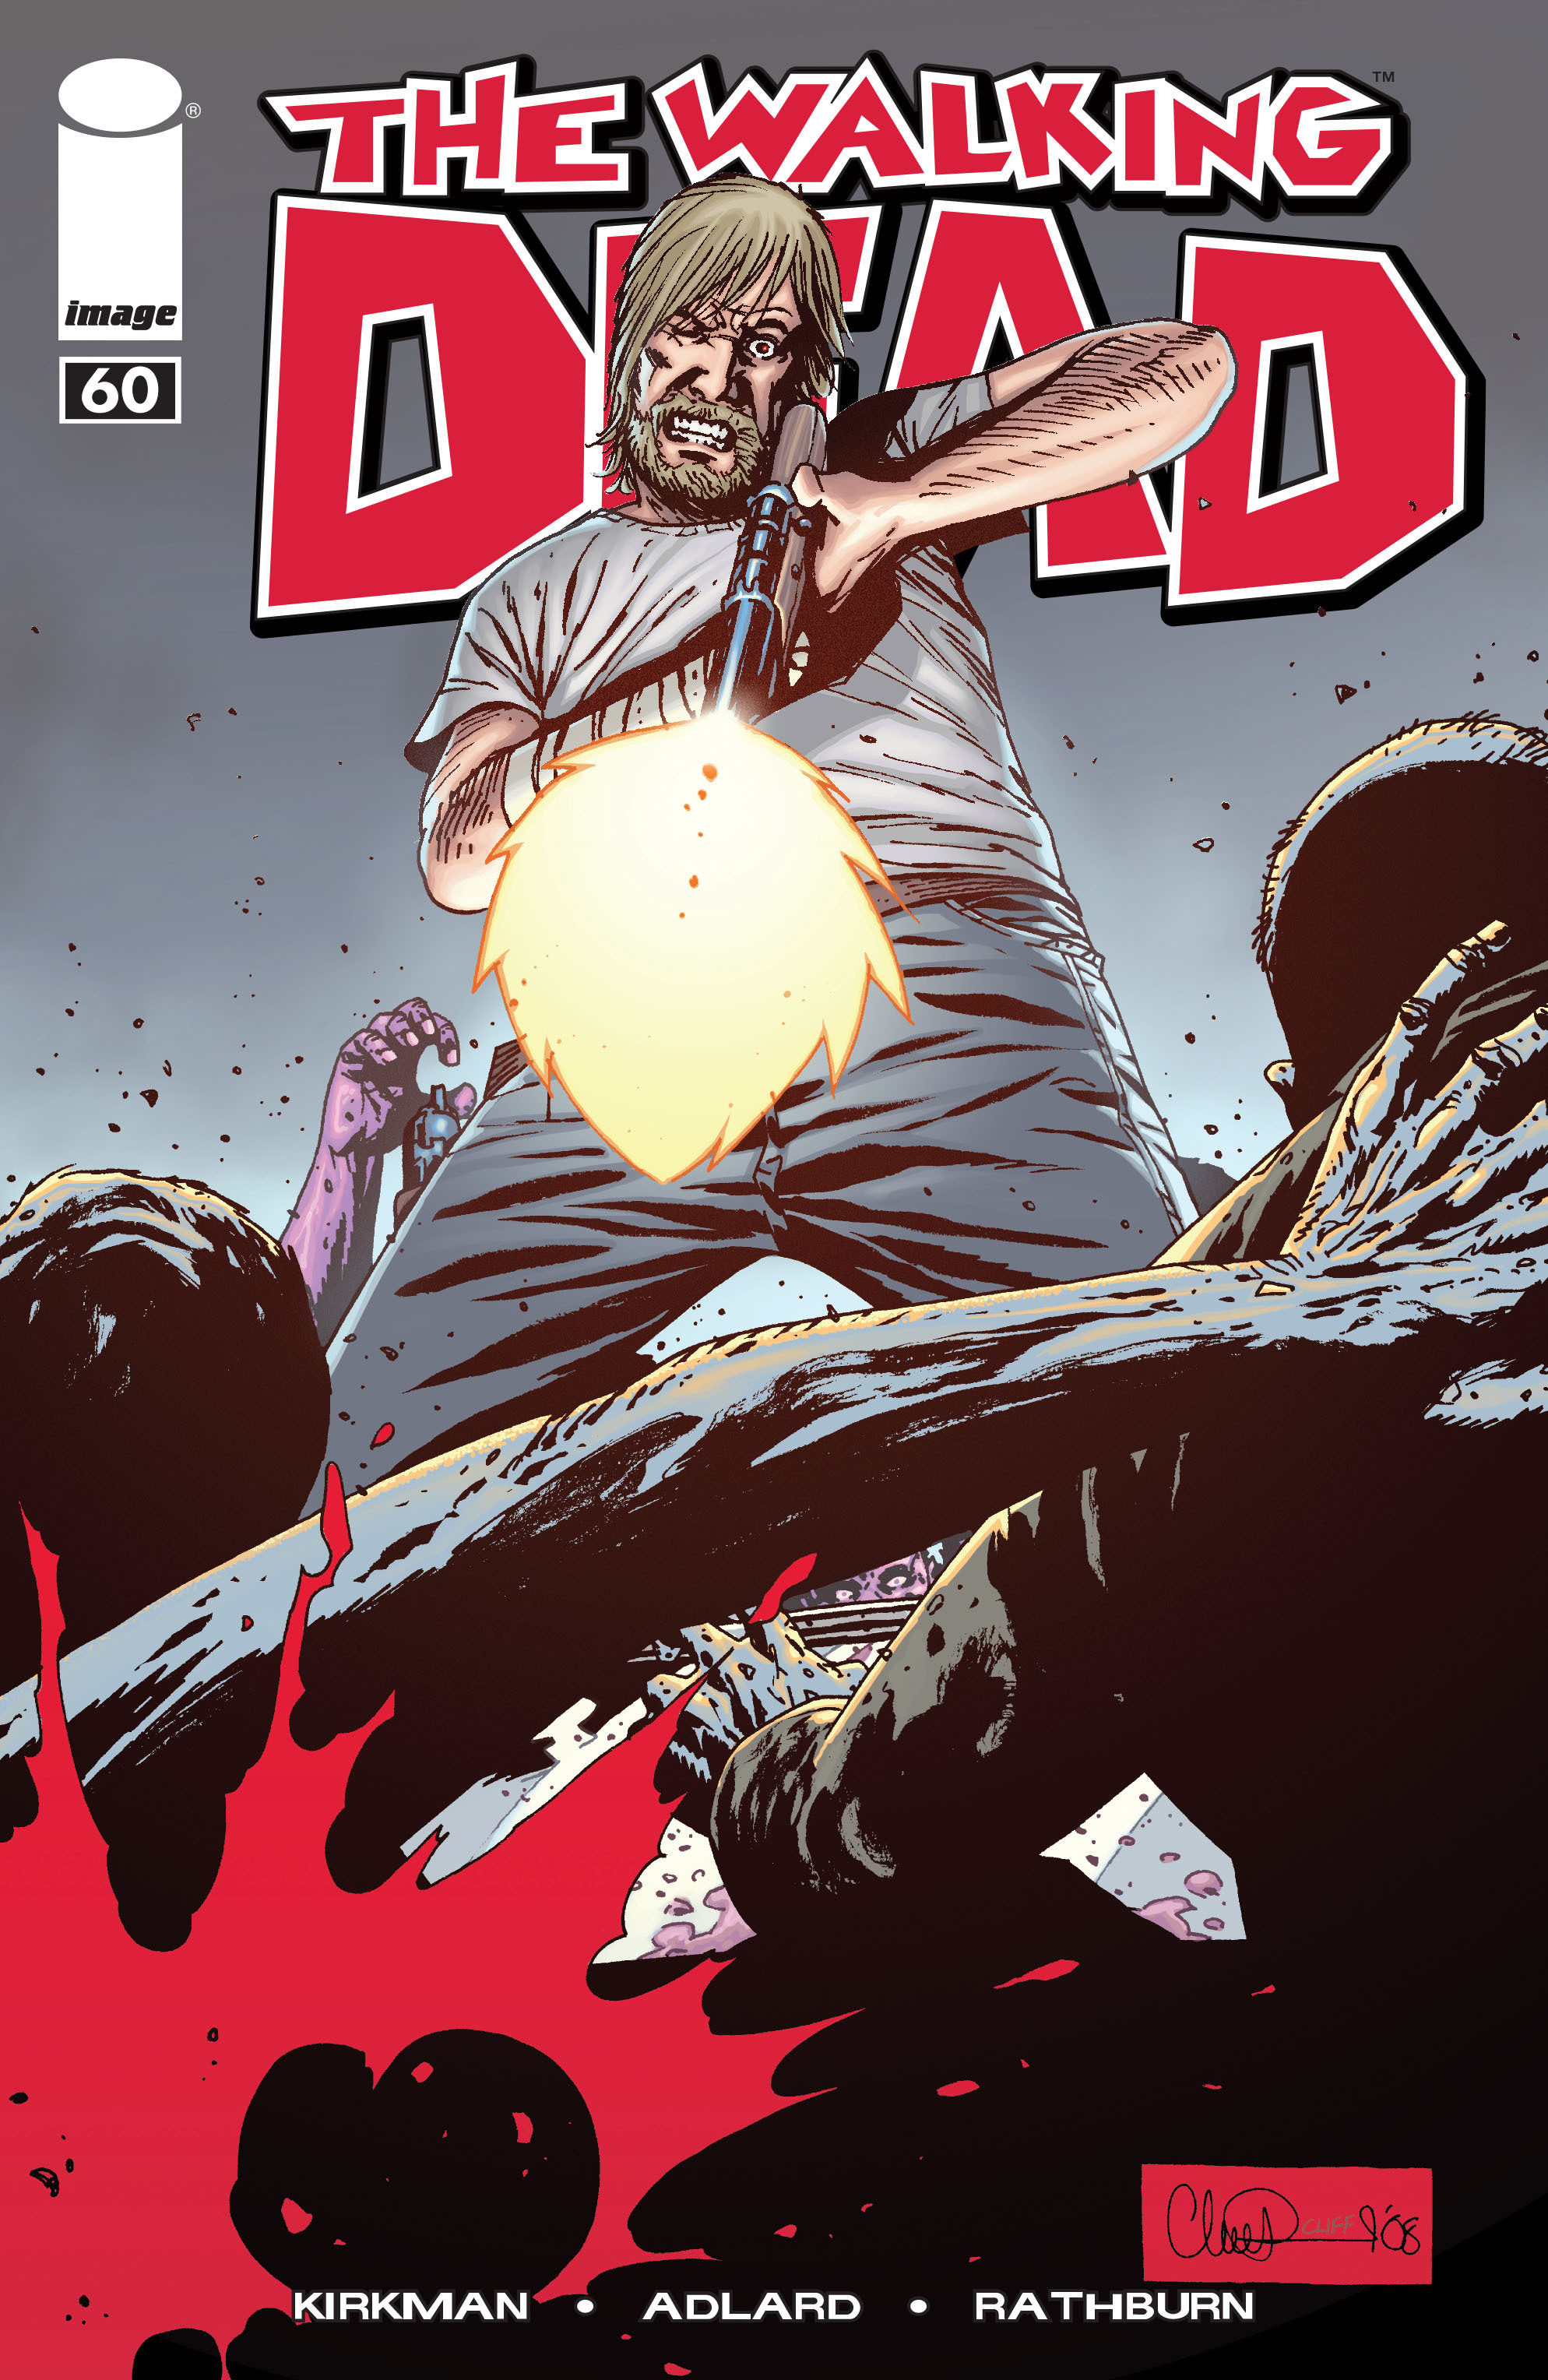 The Walking Dead 60 Page 0